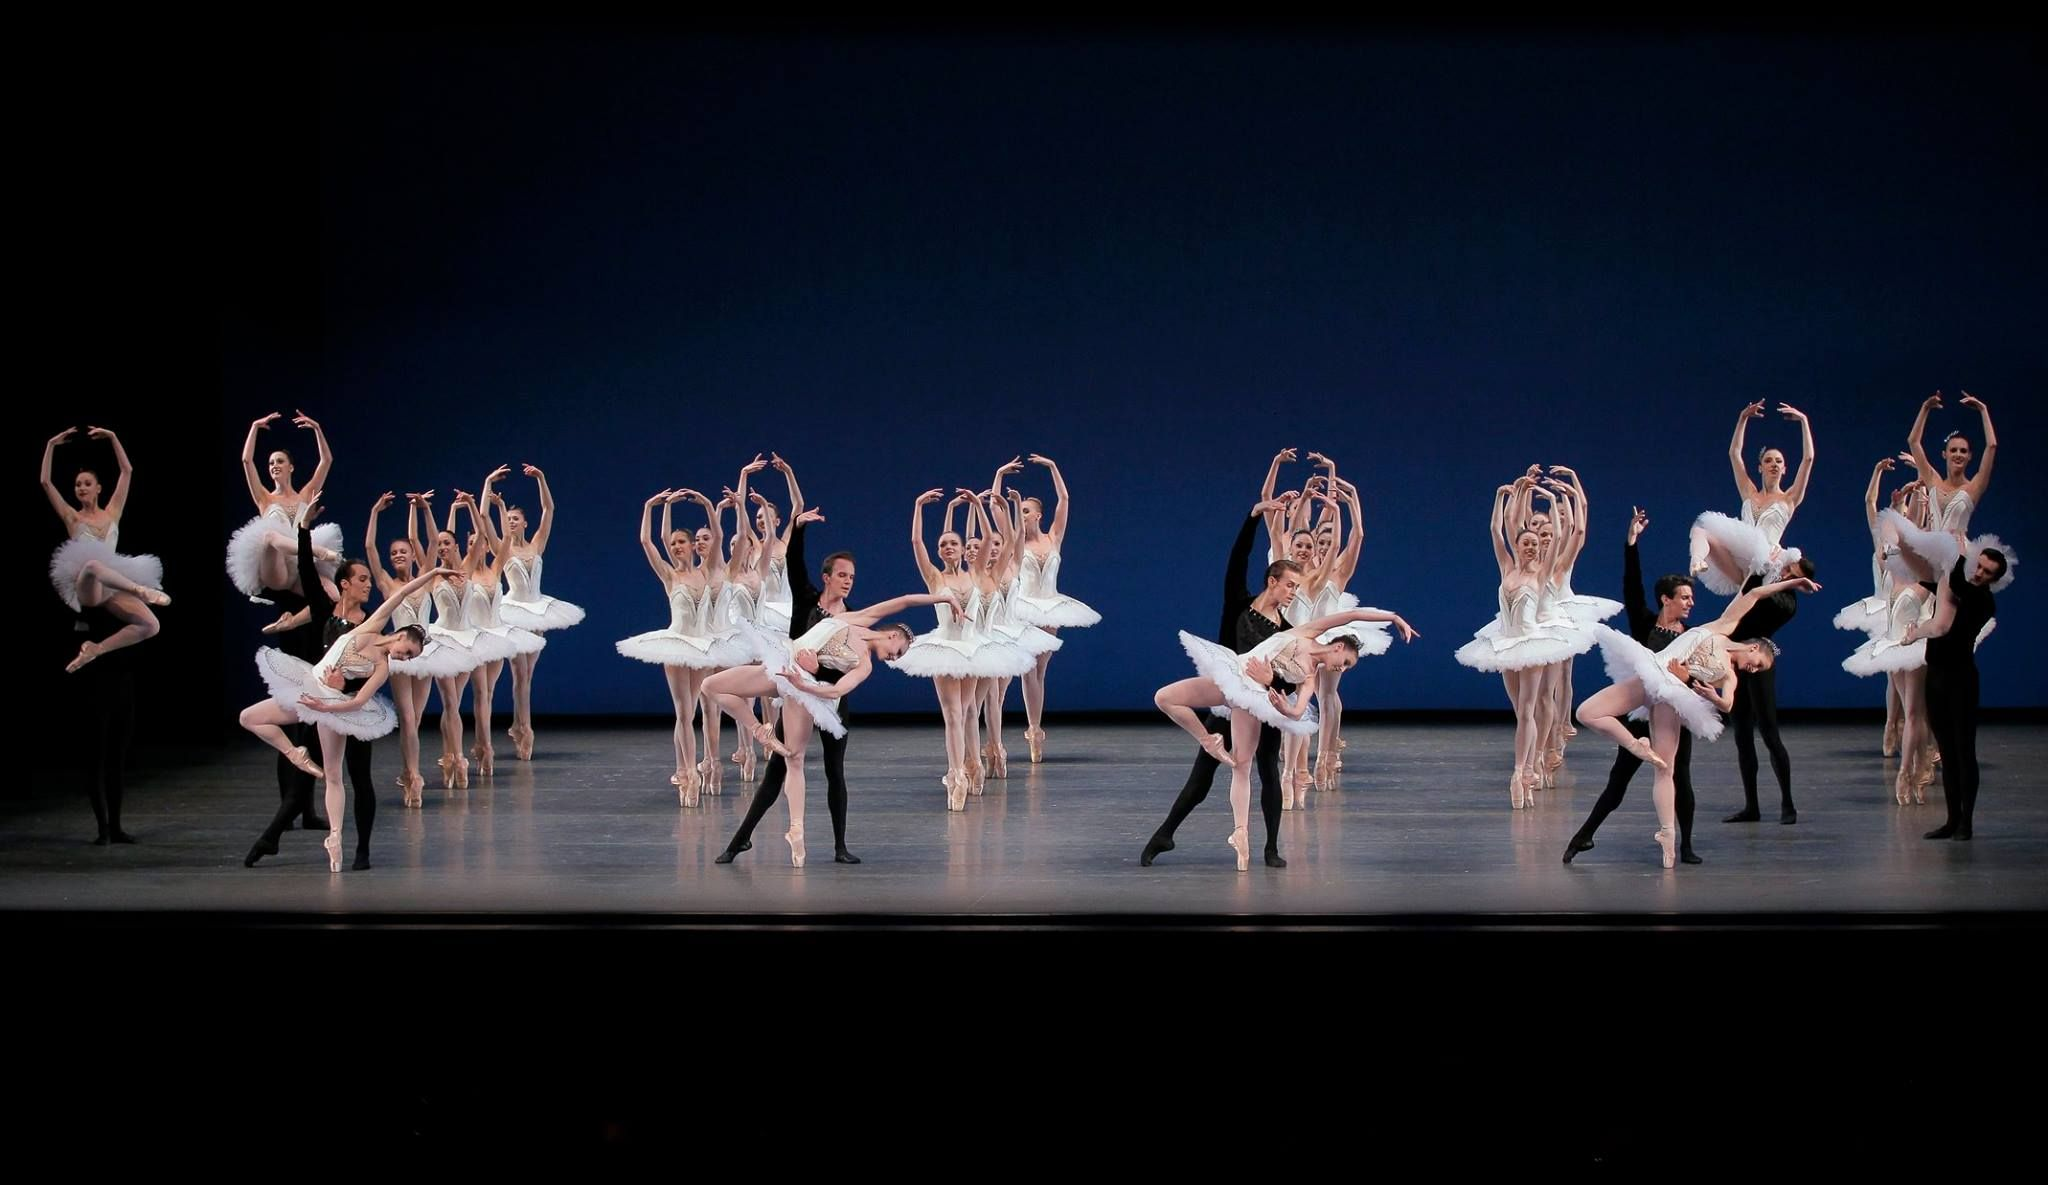 Pin by Drjaeger on To Dance City ballet, Ballet, Ballet